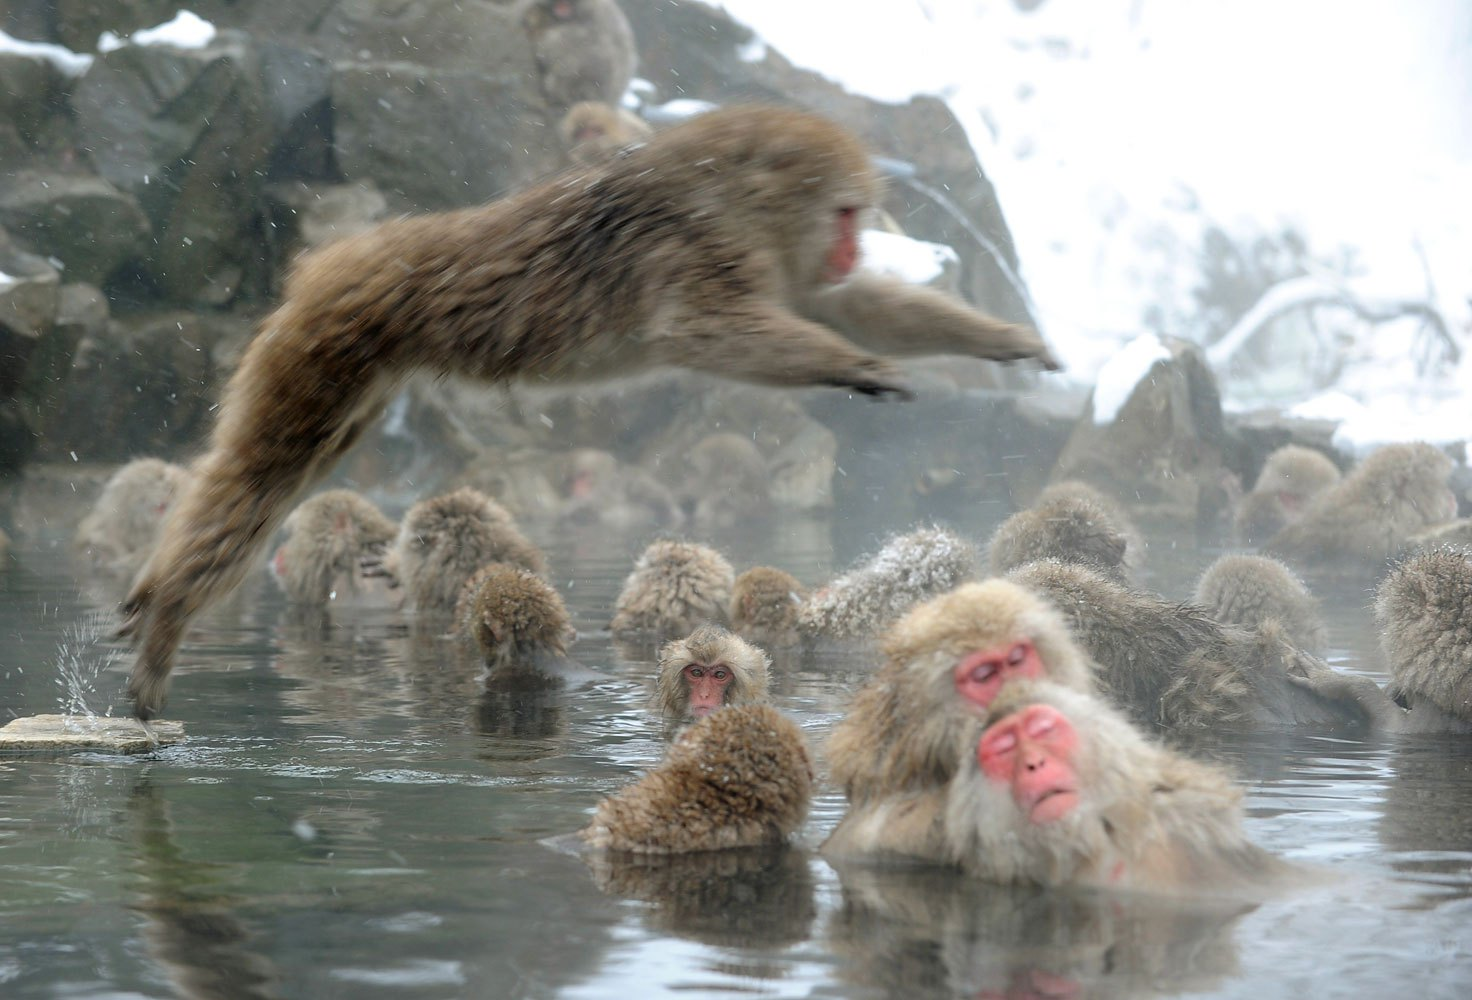 Japanese macaque monkeys, known as  snow monkeys,  take an open-air hot spring bath as snowflakes fall at the Jigokudani Monkey Park in the town of Yamanouchi, Nagano prefecture on Jan. 19, 2014.